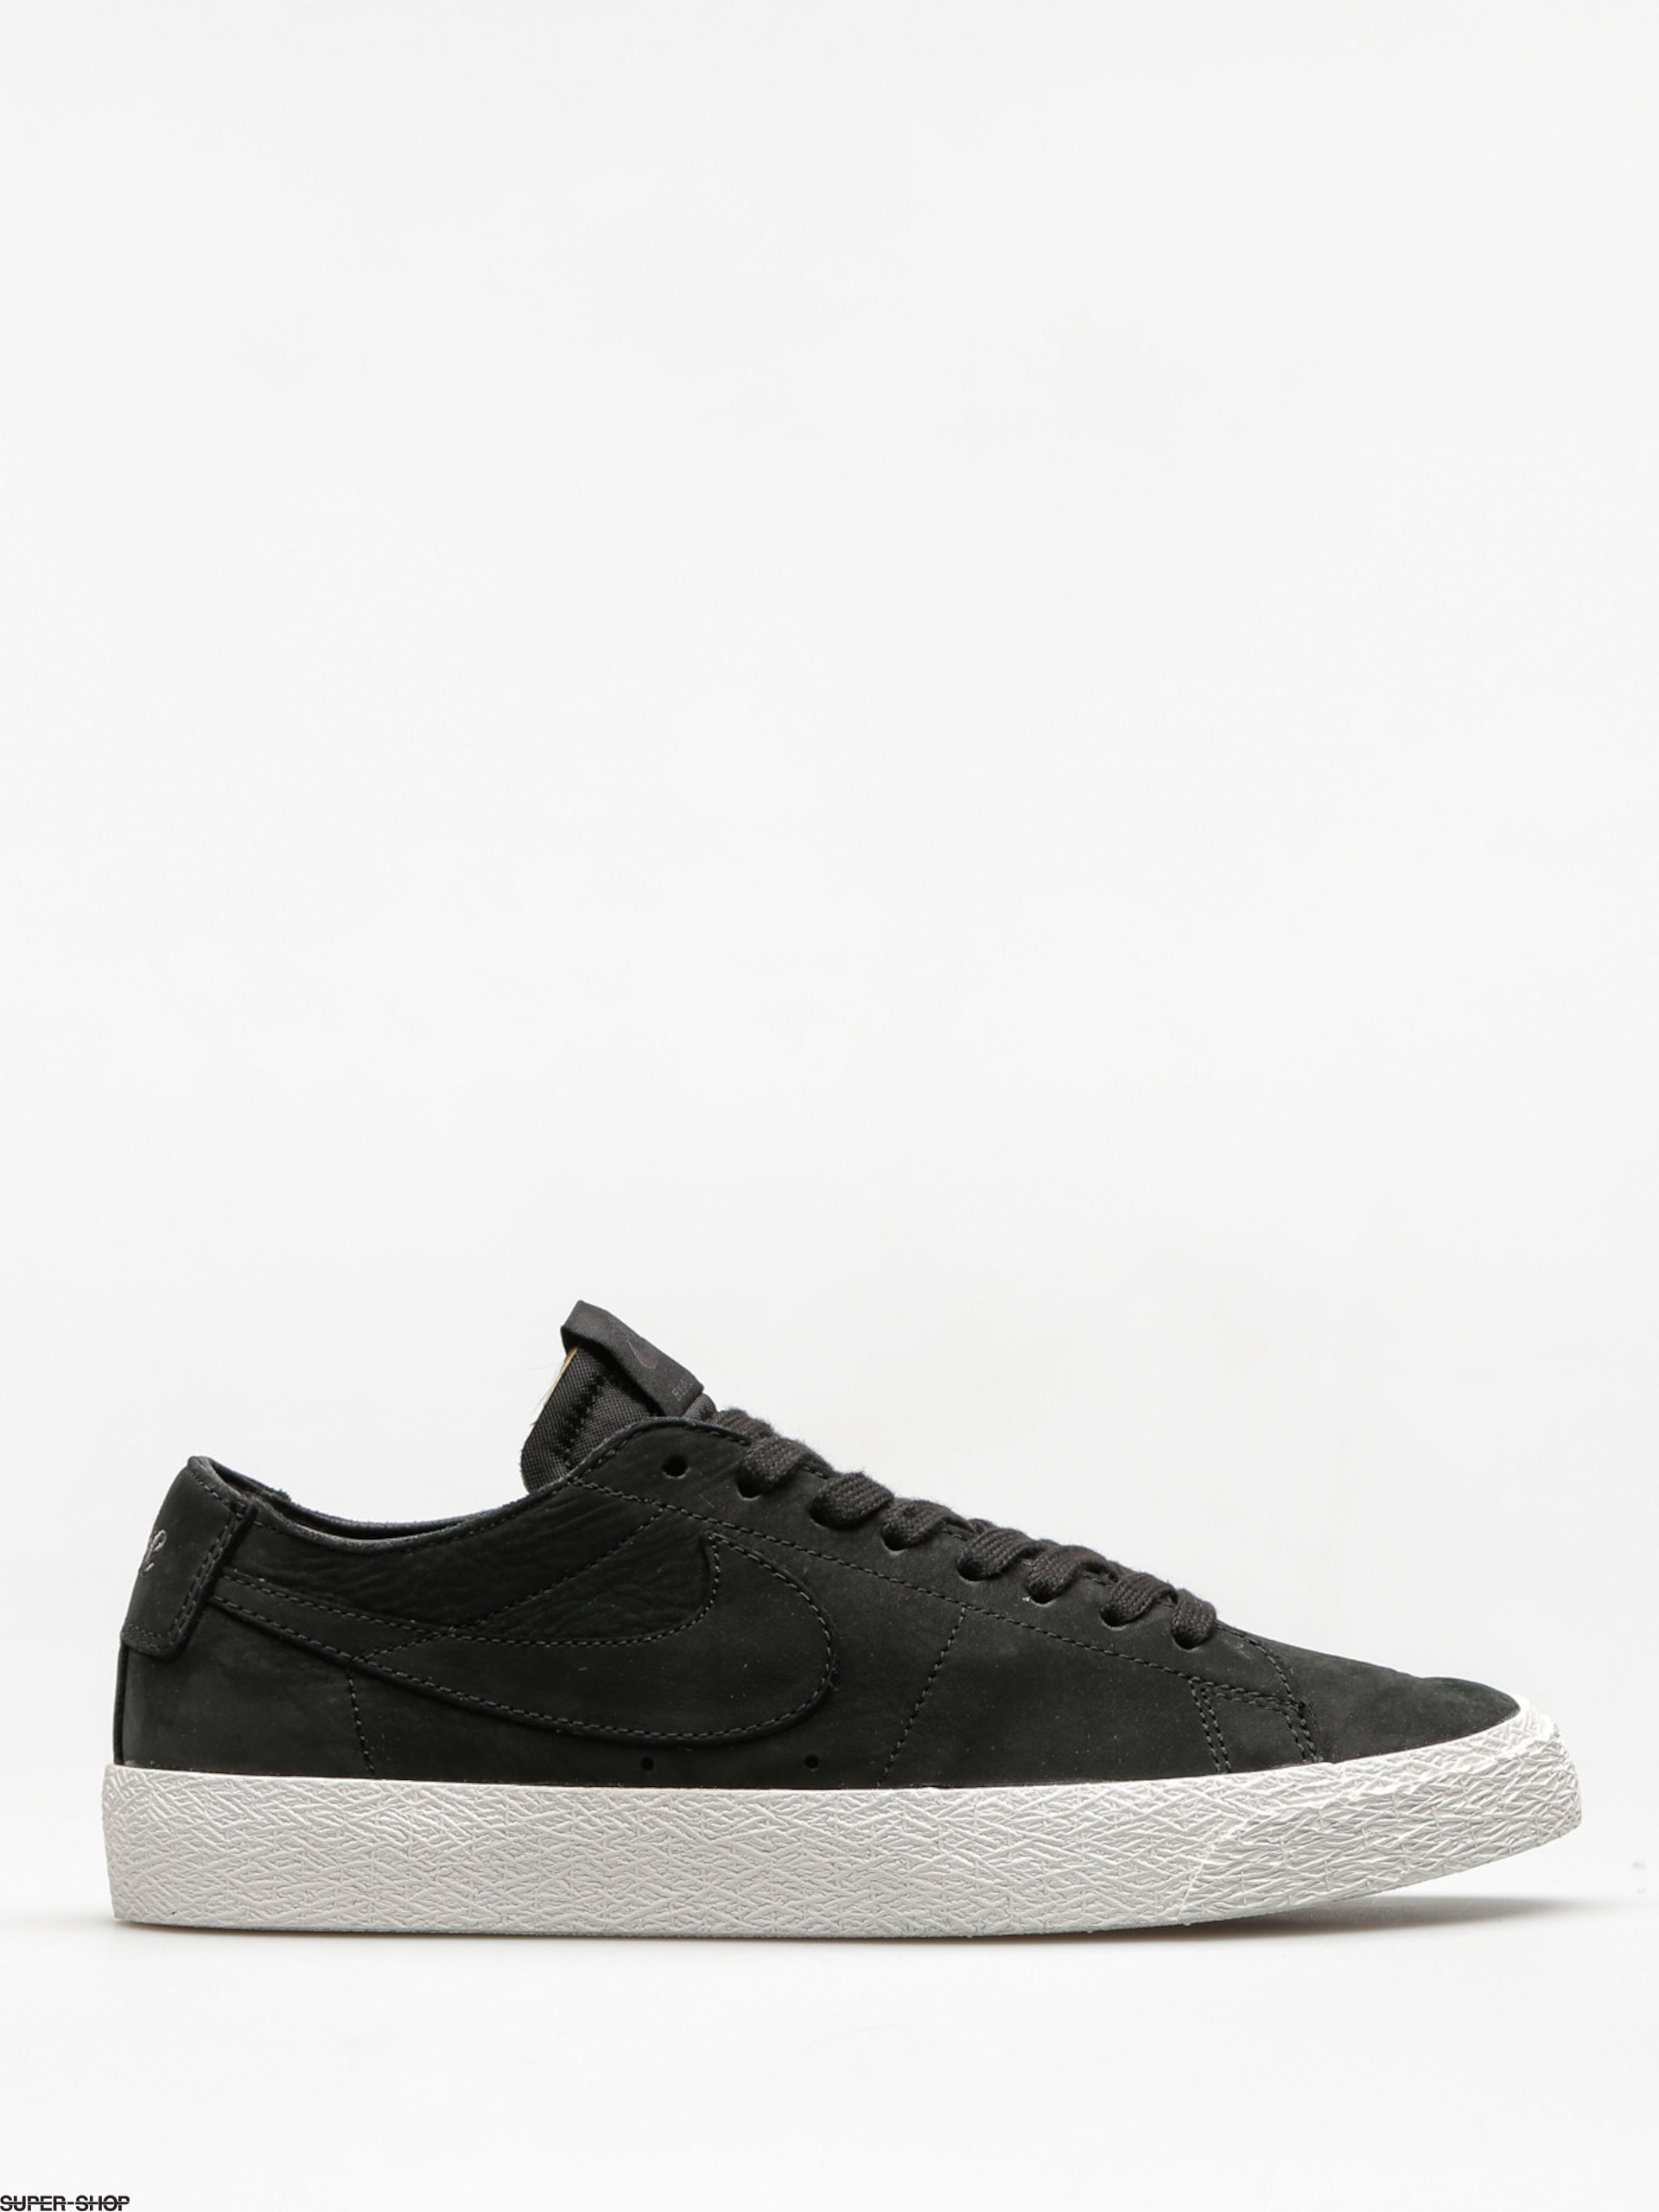 Nike SB Shoes Zoom Blazer Low Deconstruct (black black anthracite) 2526695ad